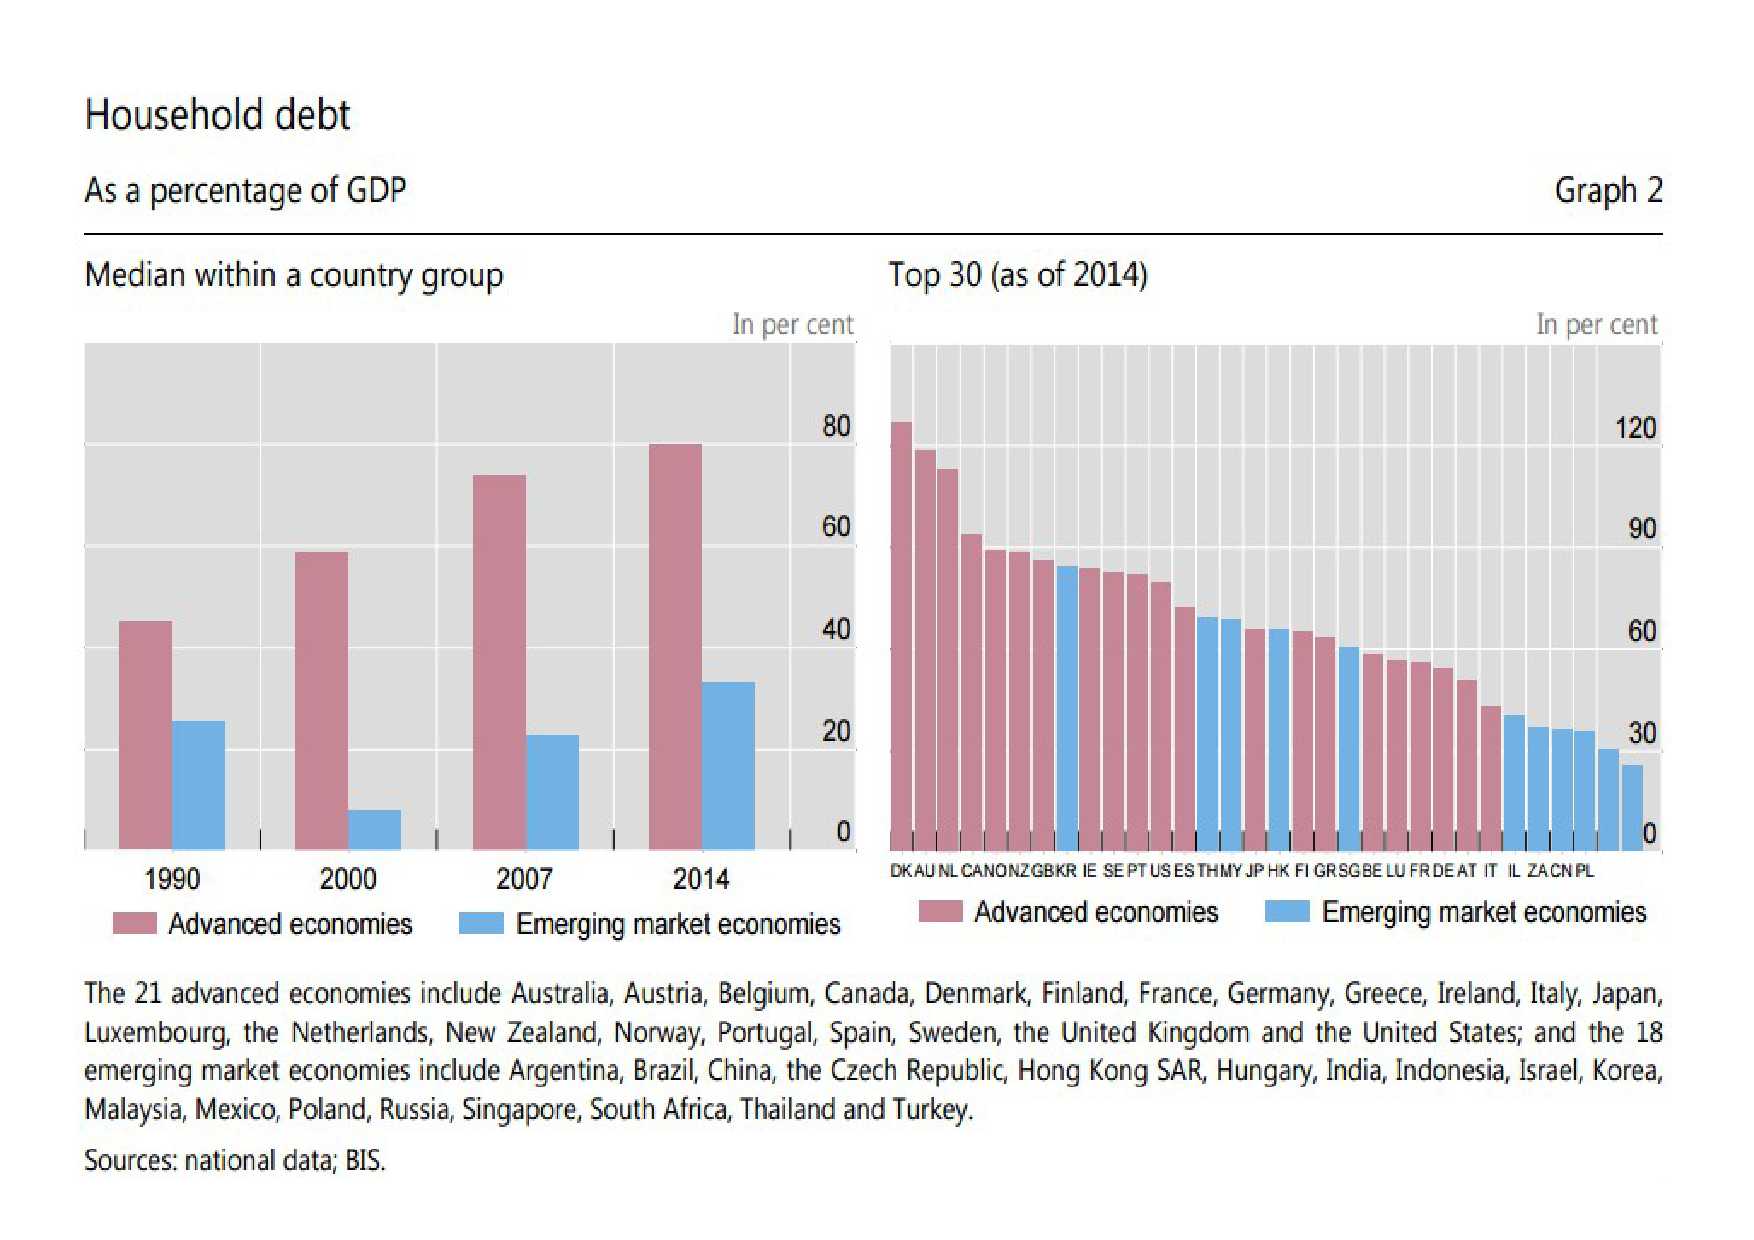 The impact of household debt and saving on long run GDP growth